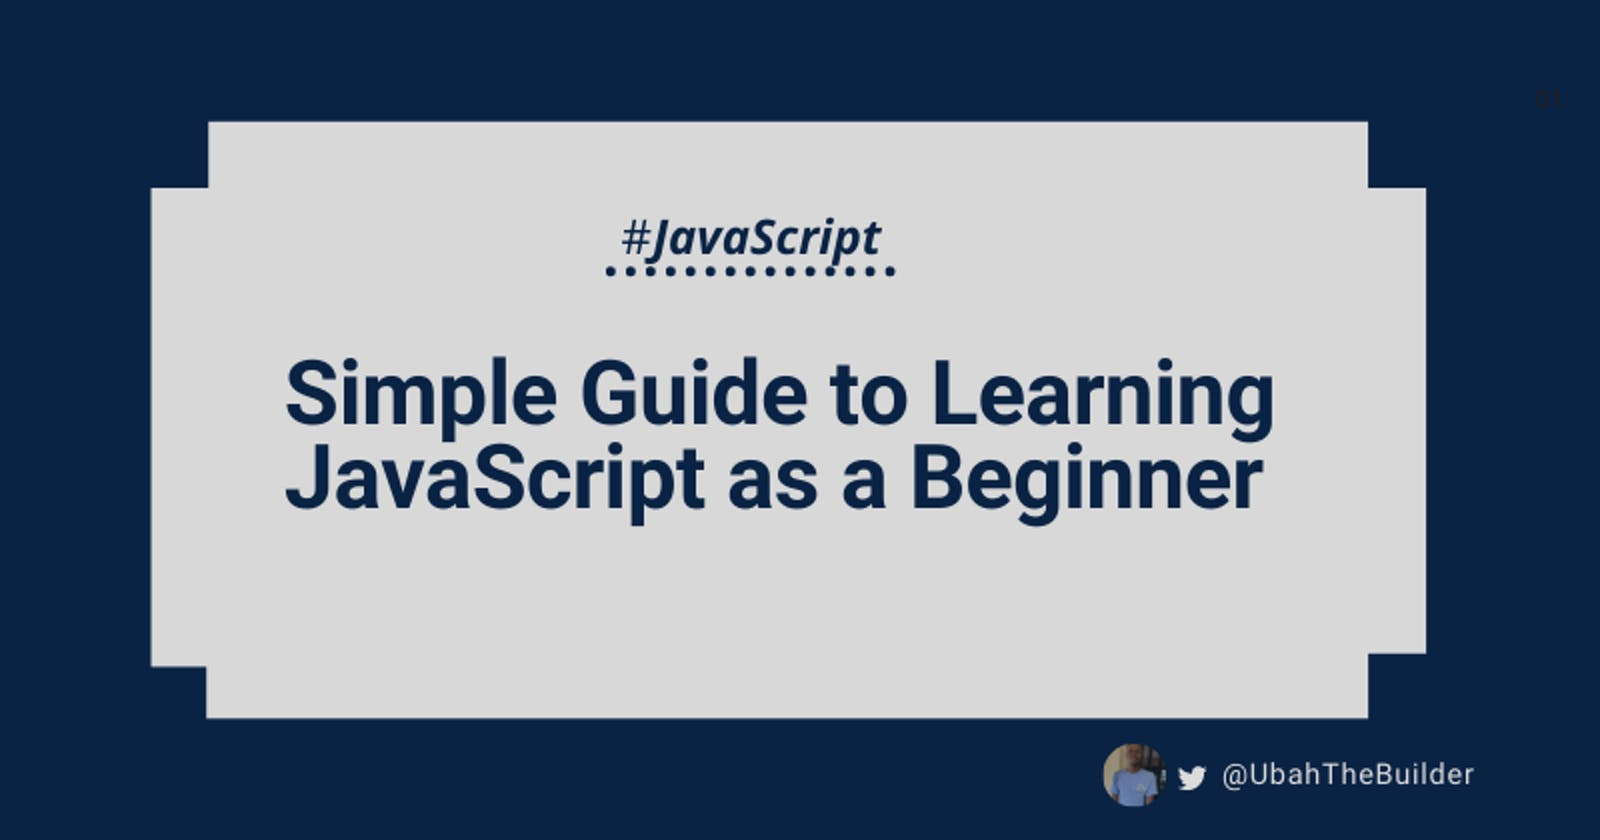 Are you learning JavaScript? - Here's the only guide you'll ever need